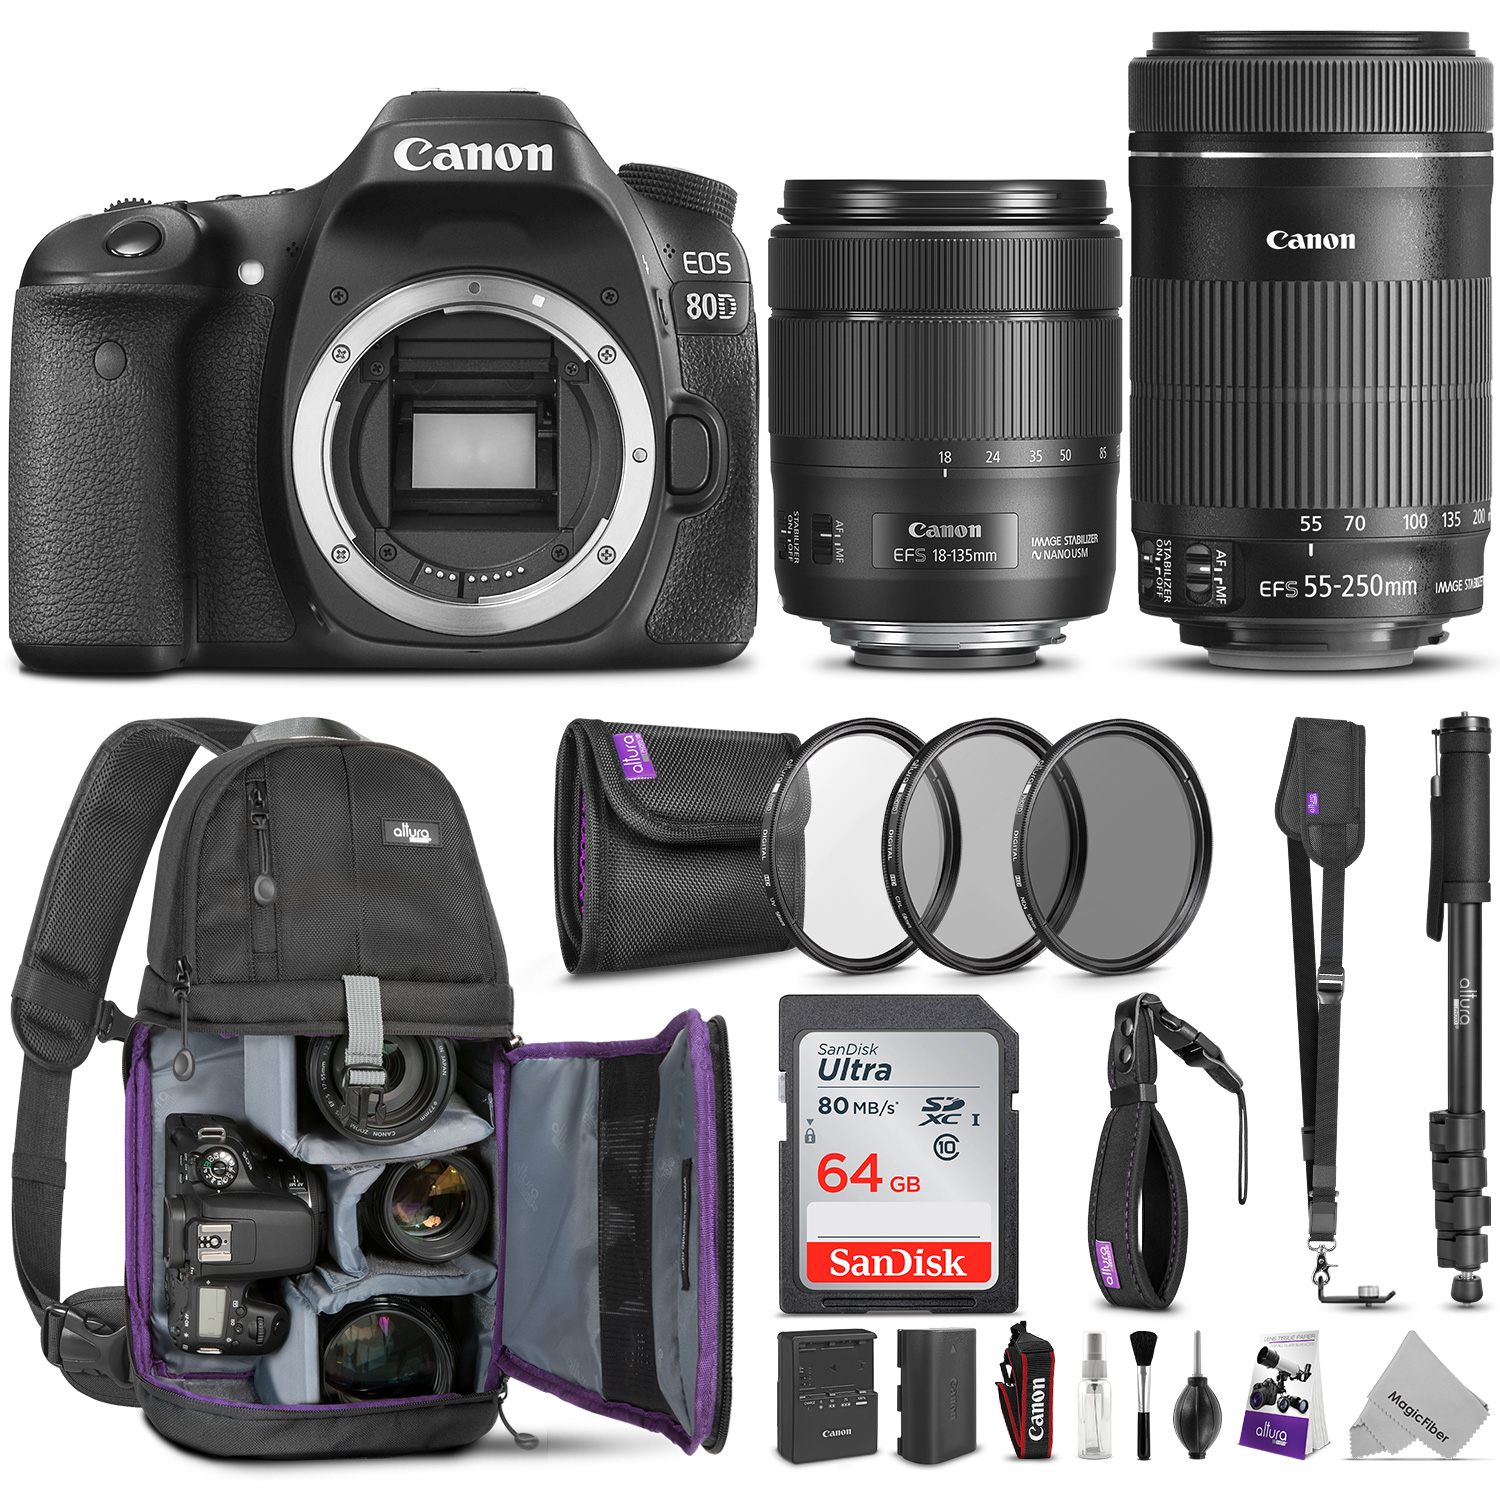 Canon EOS 80D DSLR Camera with EF-S 18-135mm f/3.5-5.6 IS USM and EF-S 55-250mm f/4-5.6 IS STM Lens w/ Advanced Photo and Travel Bundle